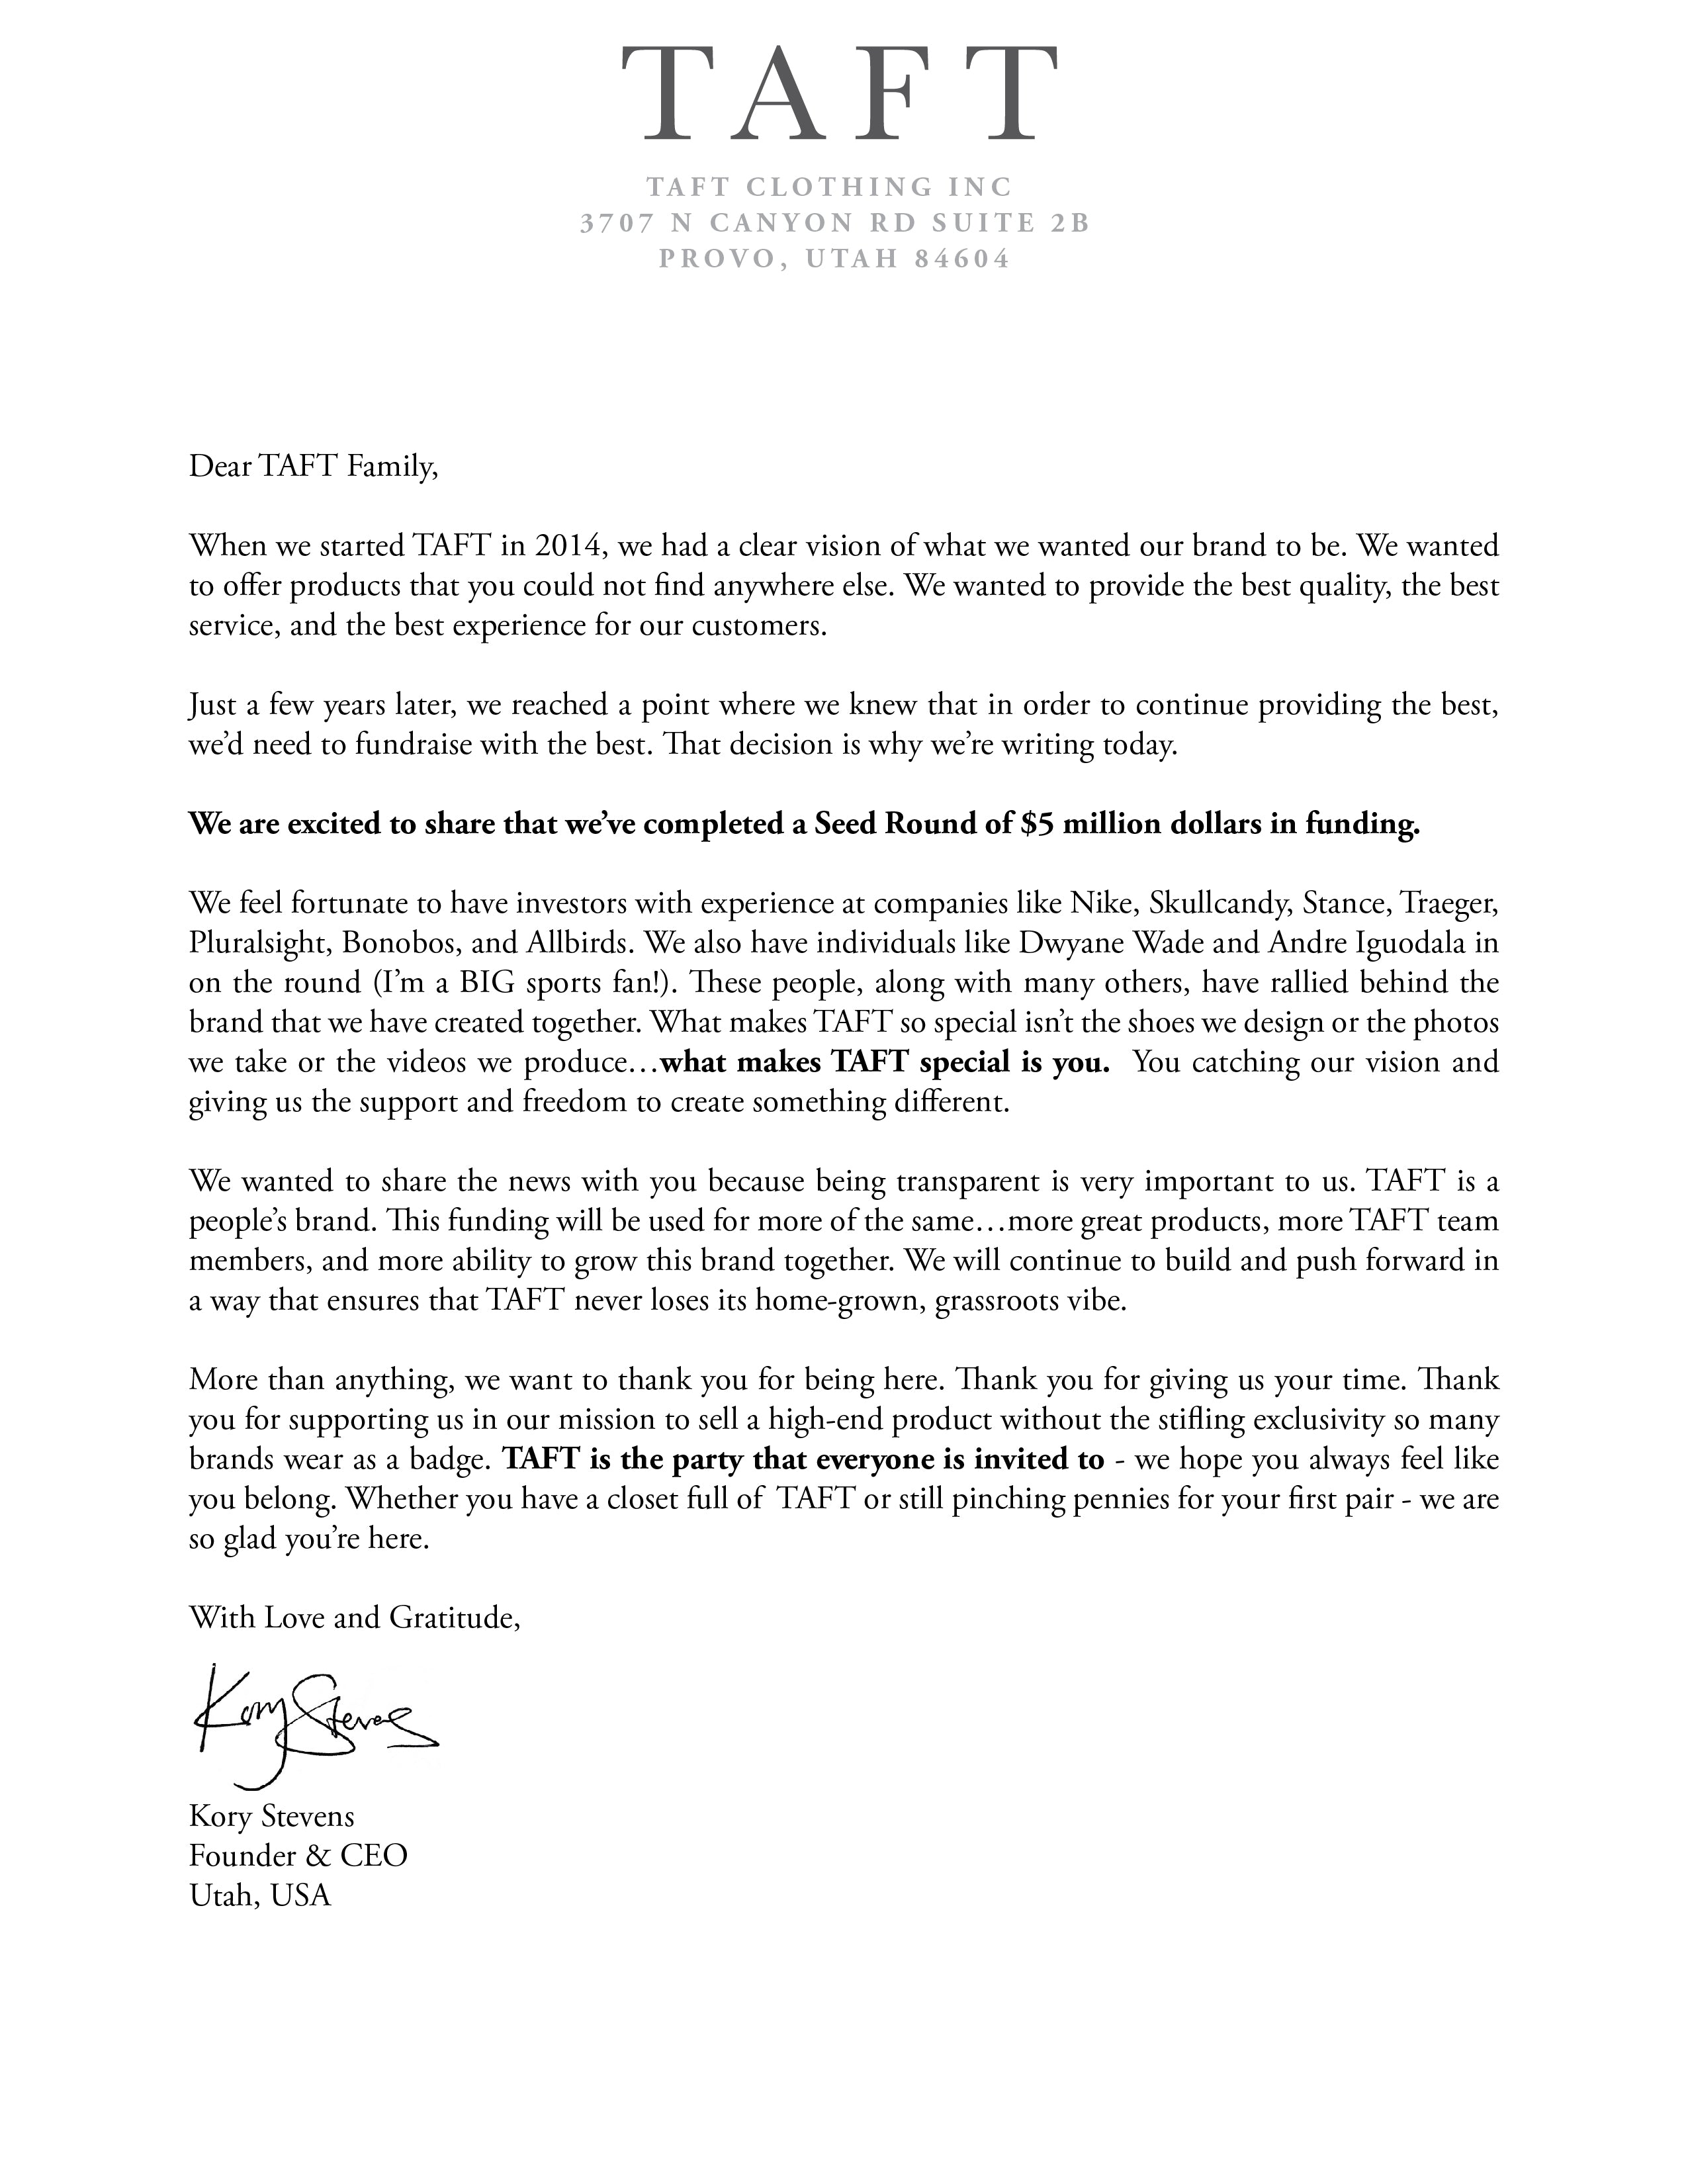 letter from the founder of TAFT announcing a 5 million dollar fundraise